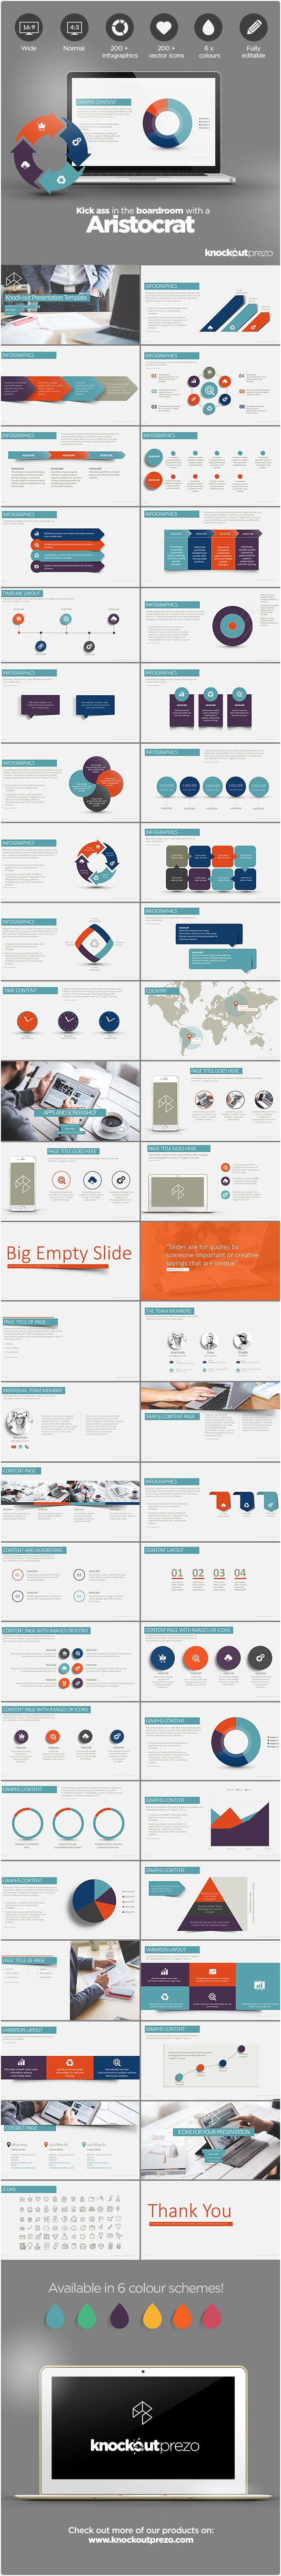 Aristocrat PowerPoint Template - Business PowerPoint Templates